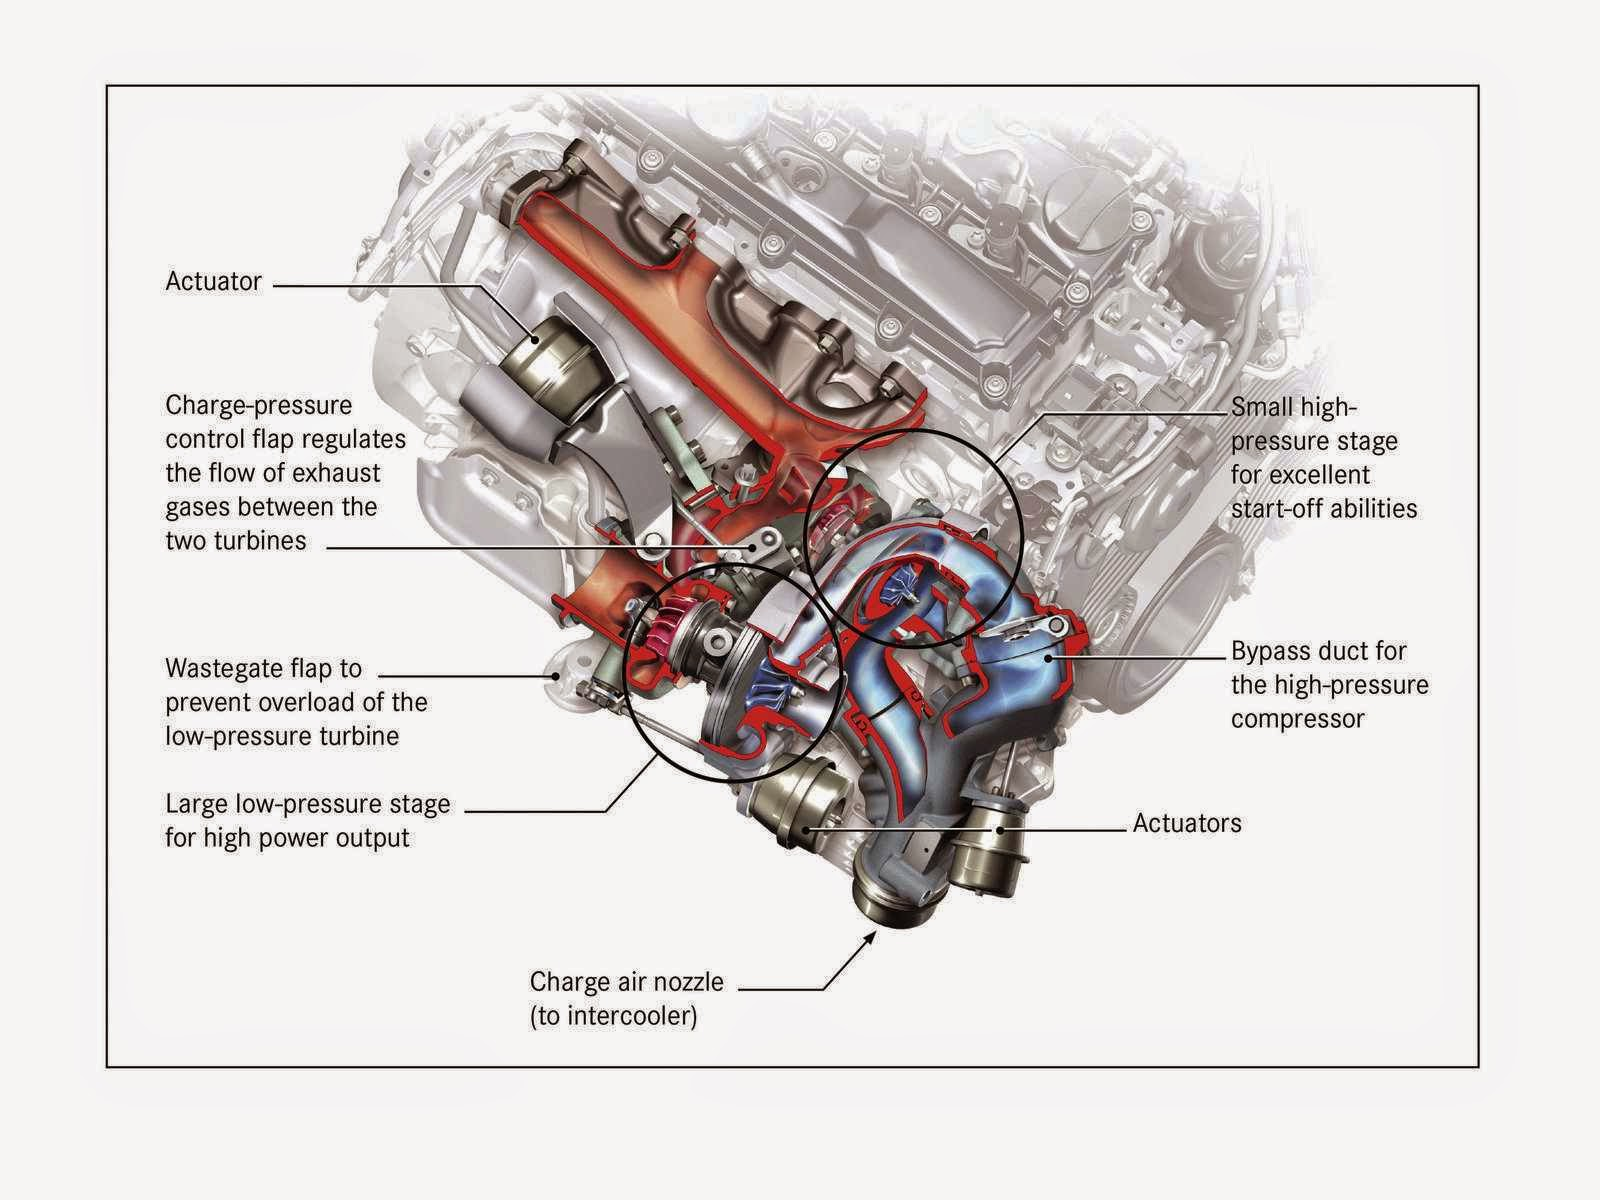 Turbo Automobile Diagram - Physics & Chemistry & Biology: Turbo ...